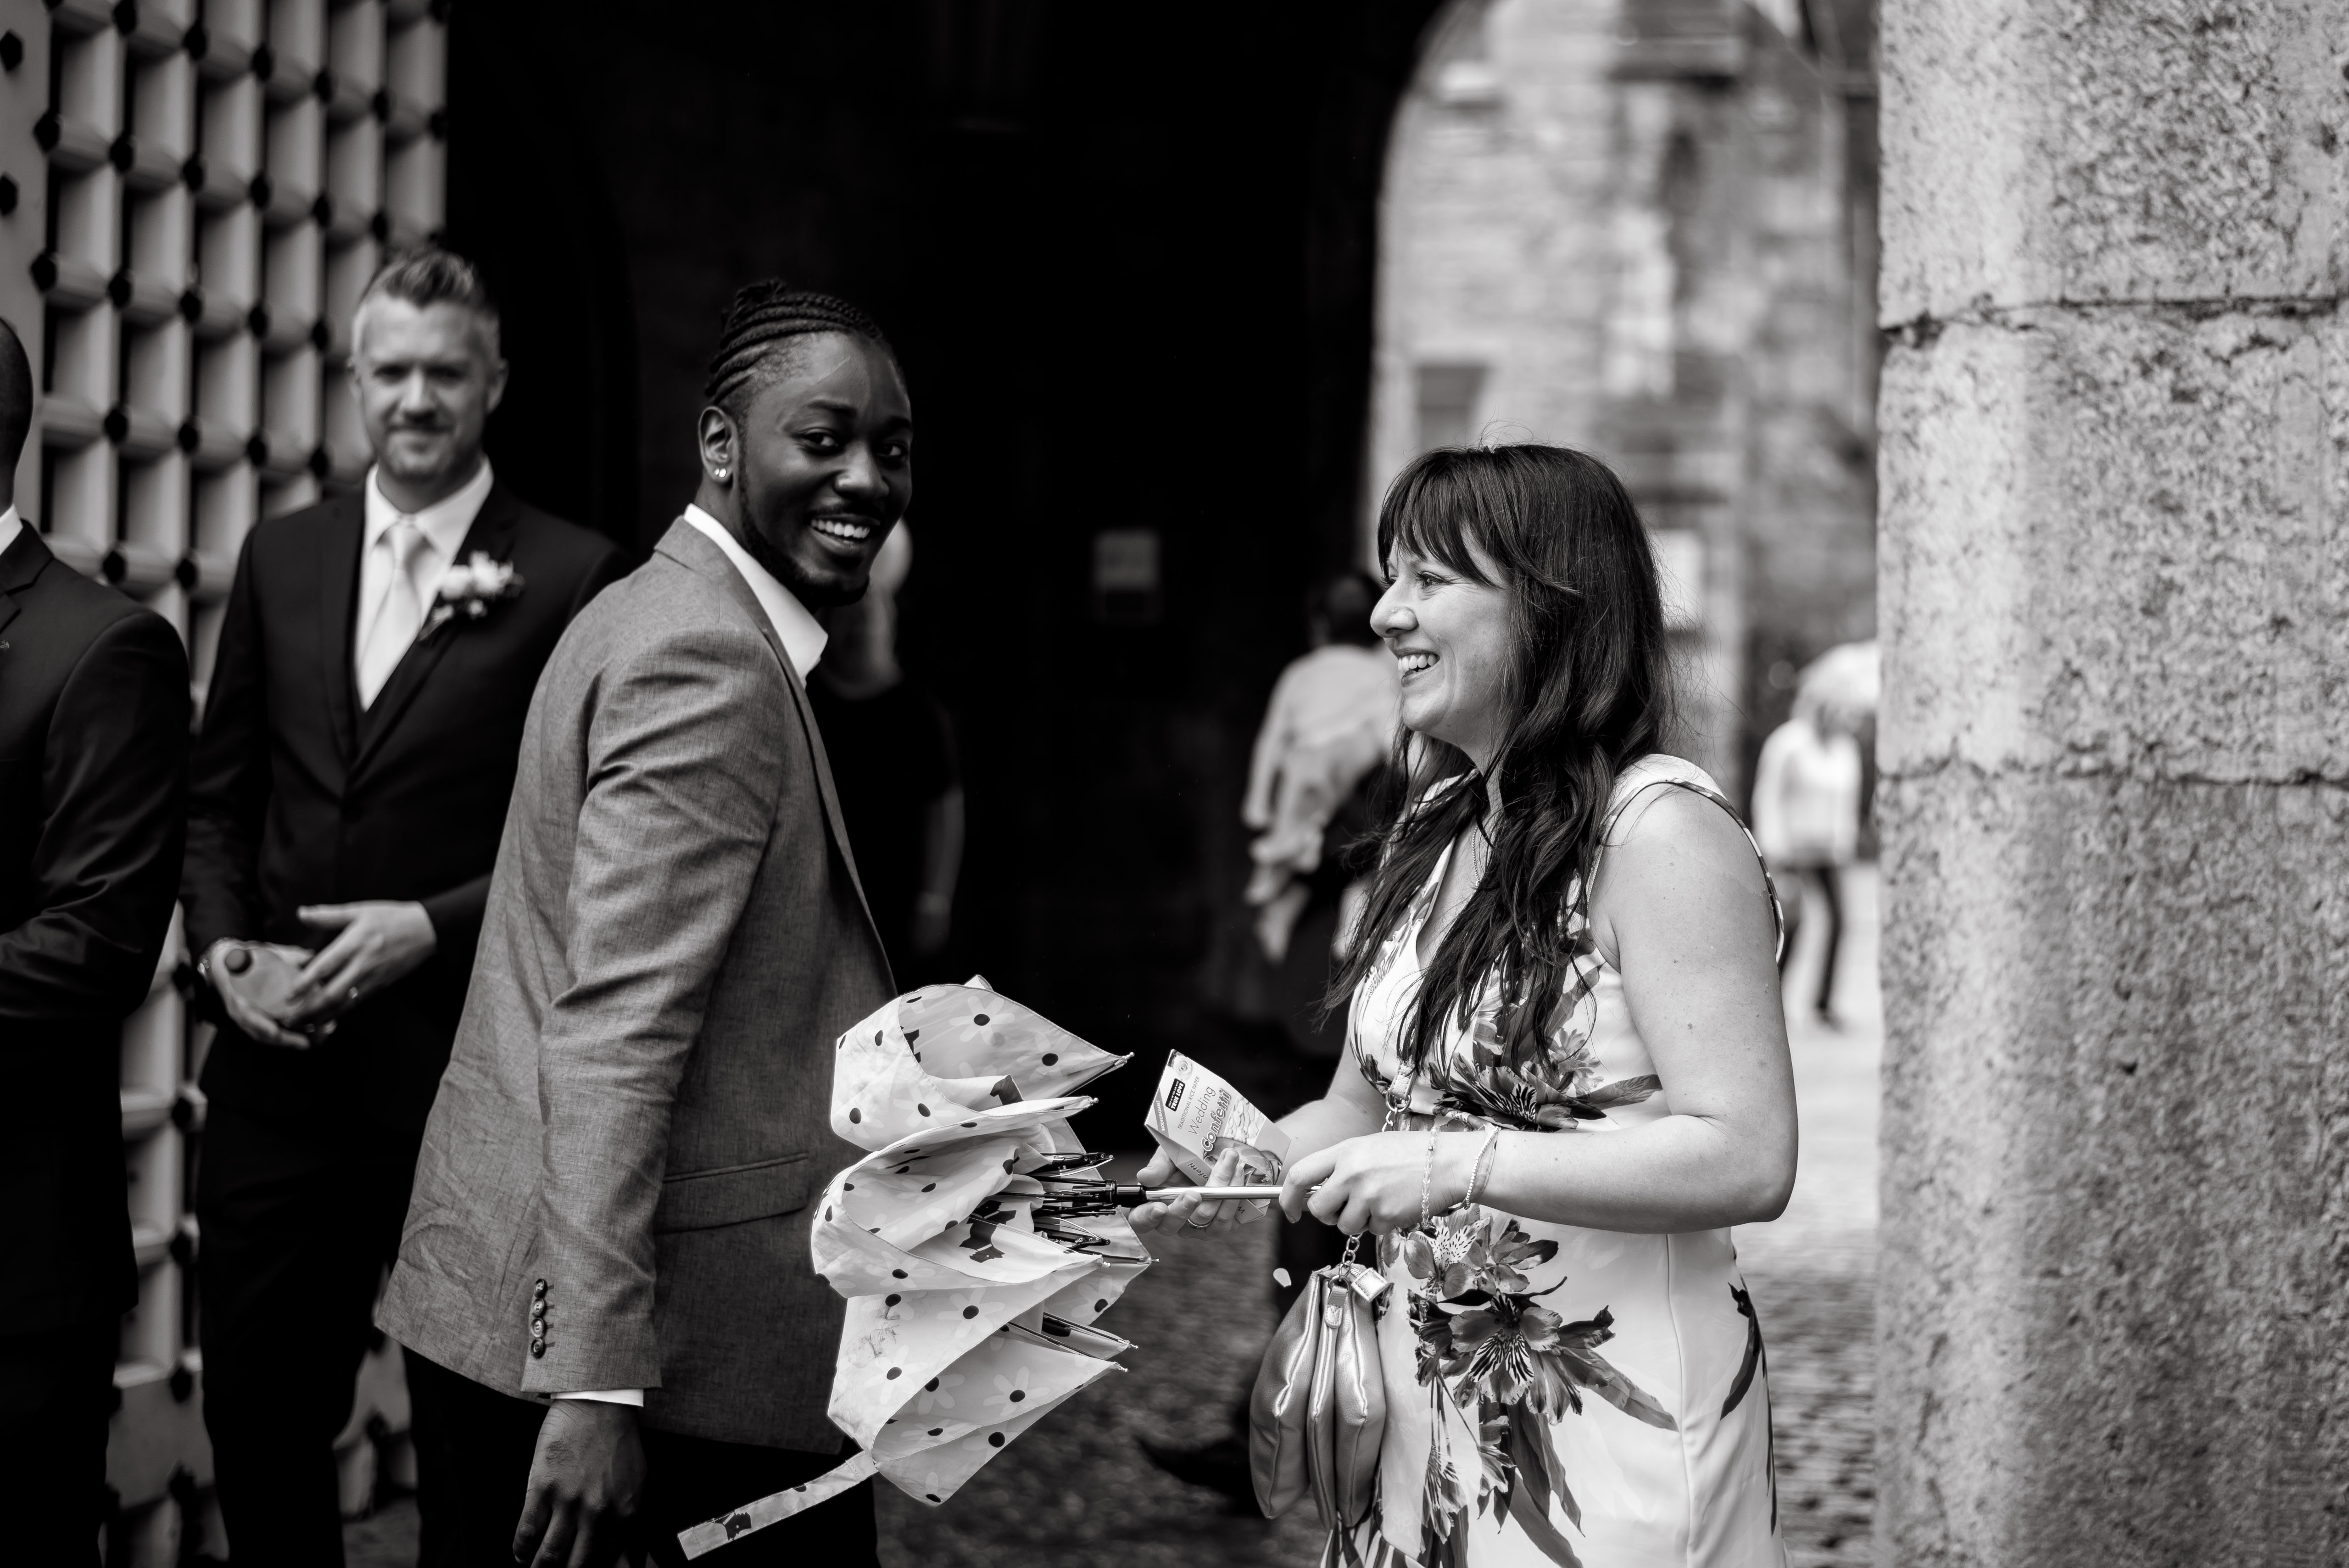 Wedding Photographer from Denbighshire at Bodelwyddan castle. With the guests laughing and joking.